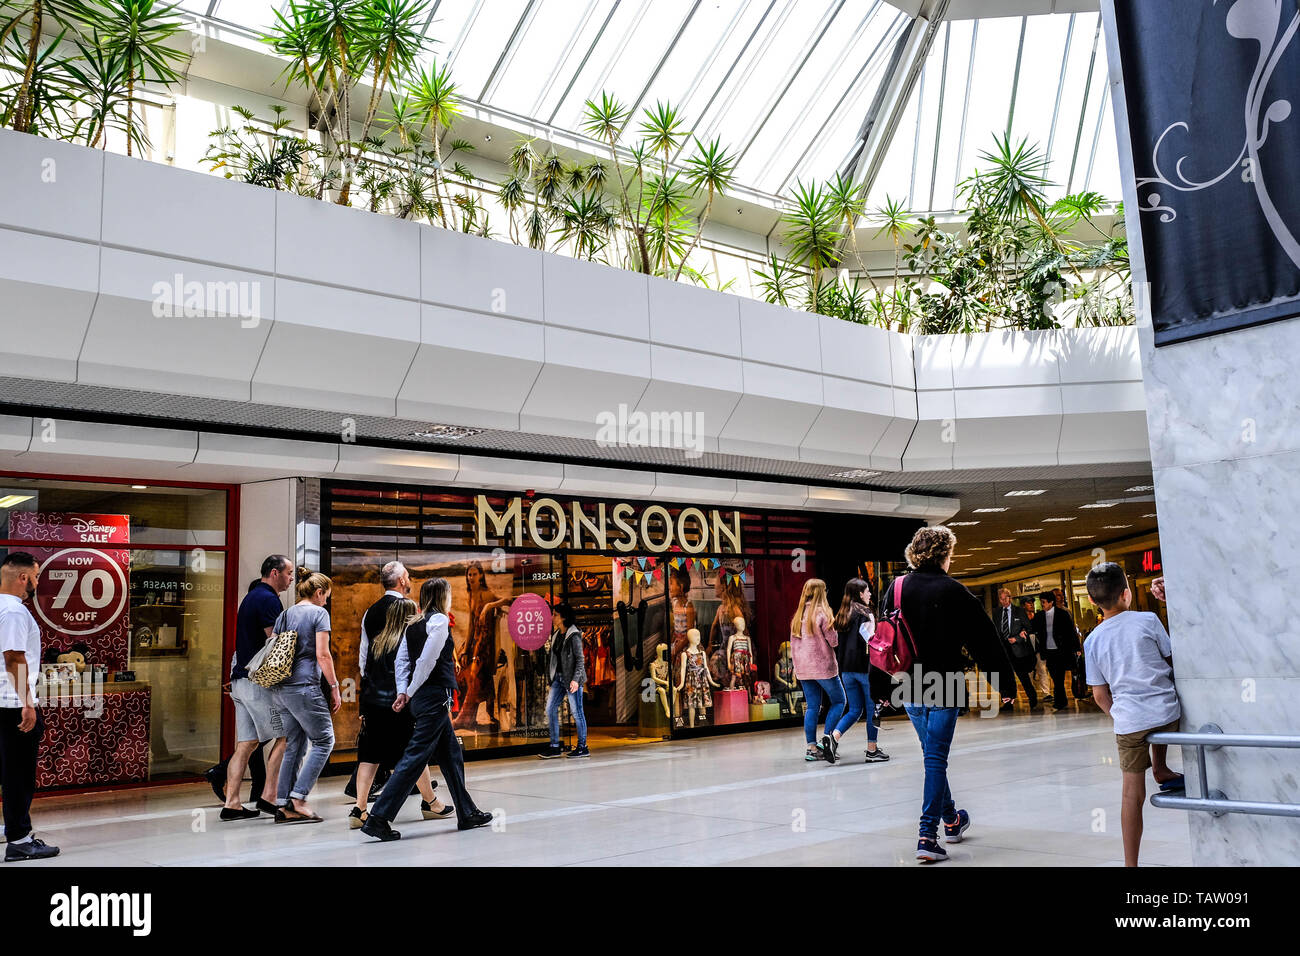 High Street Retail Chain Monsoon and Accessorize Sees Founder Peter Simon Pledge Upto £34 million To Support The Retail Chain In May 2019 In Return Fo - Stock Image